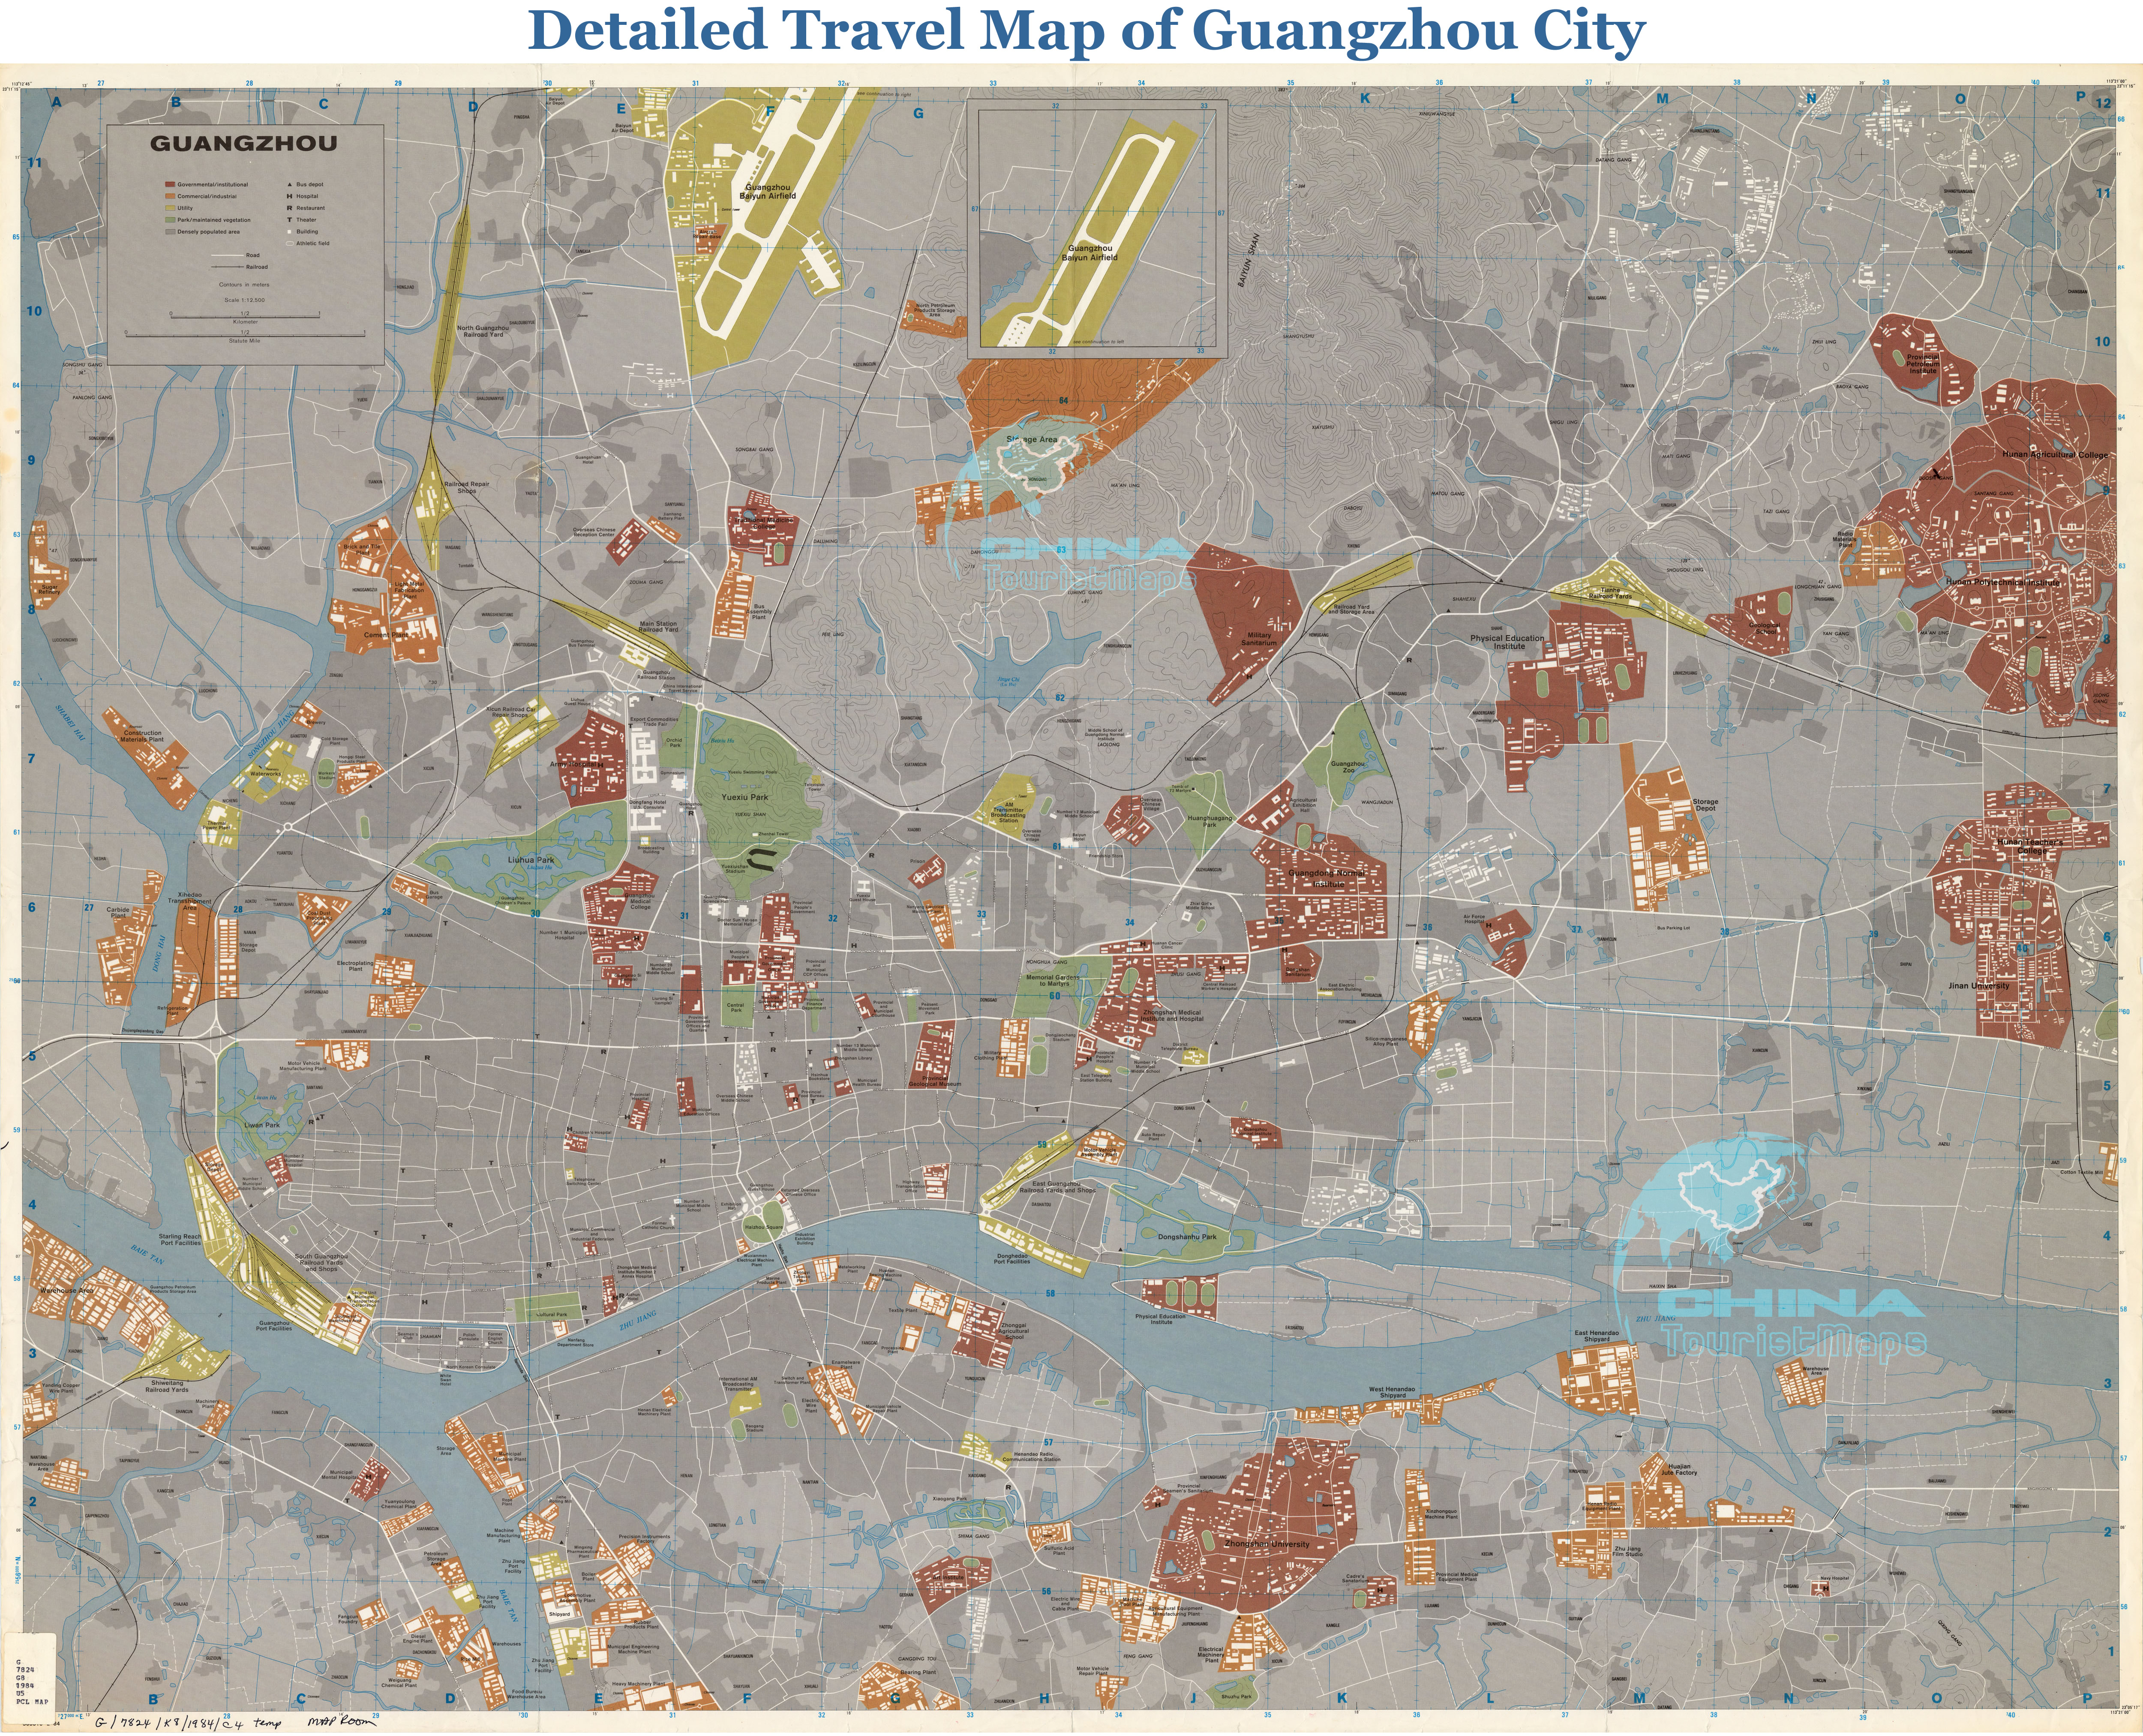 Travel Map of Guangzhou - District, Buildings, Rivers, Attractions ...